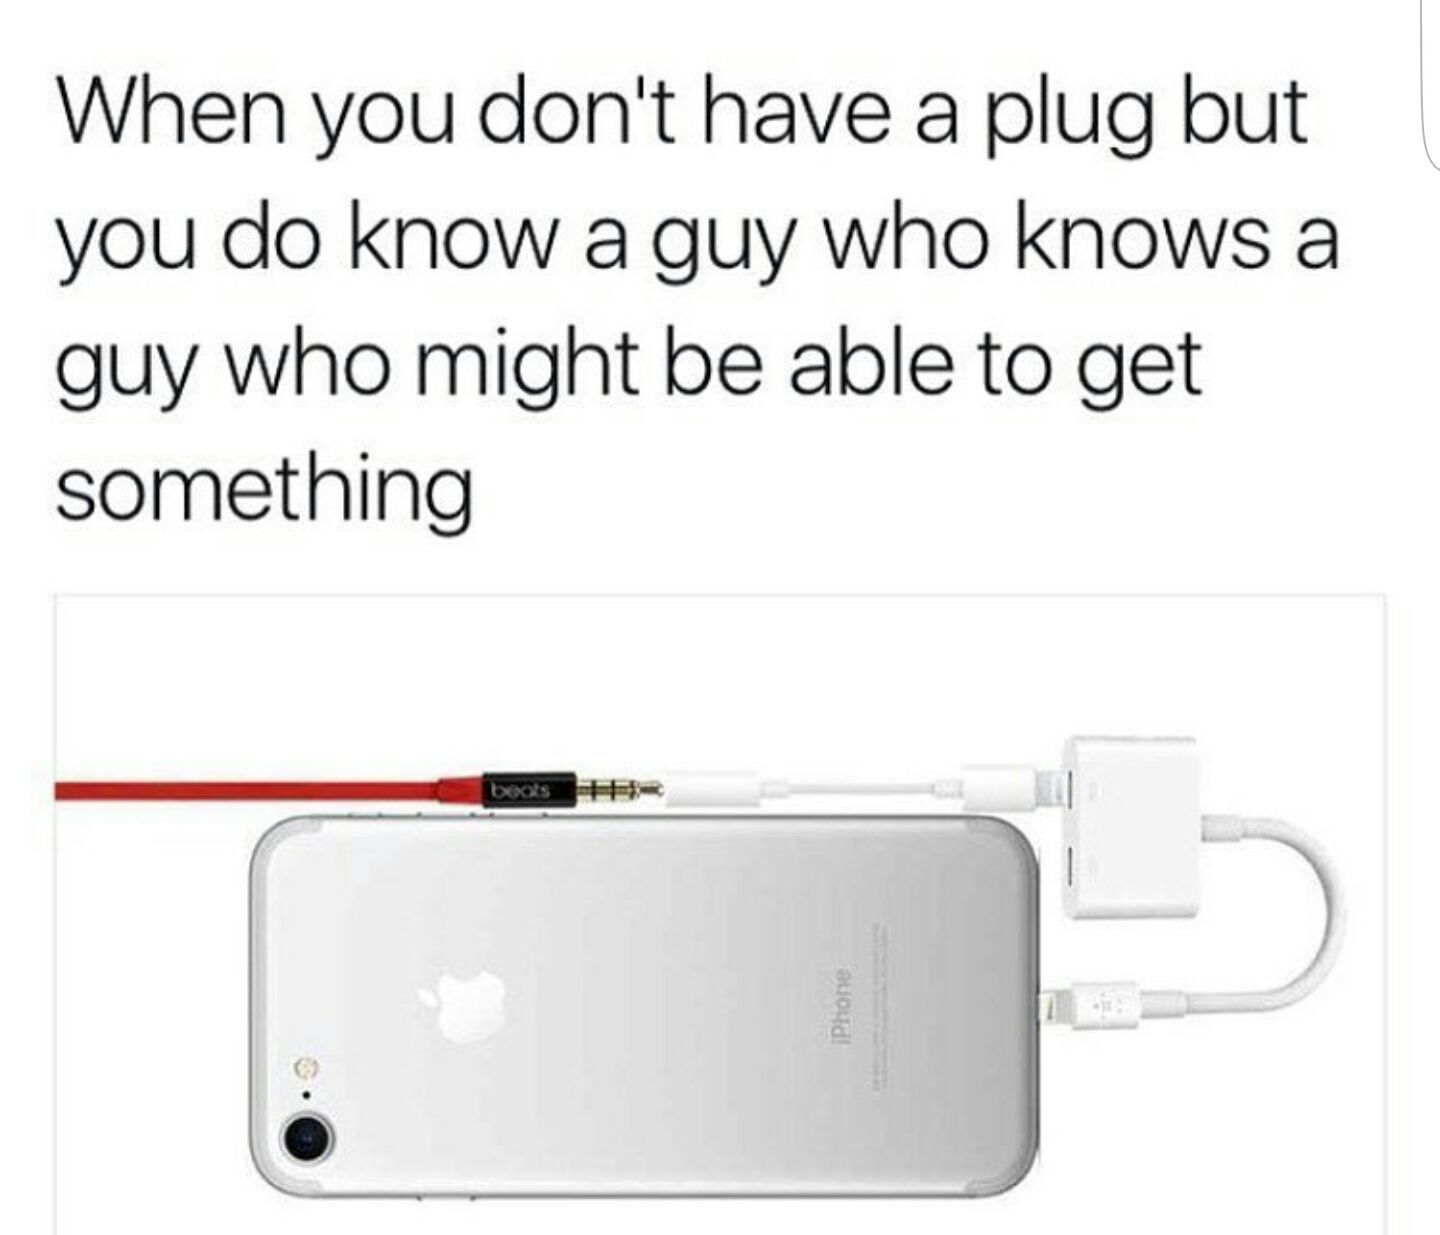 iphone users know many guys - meme